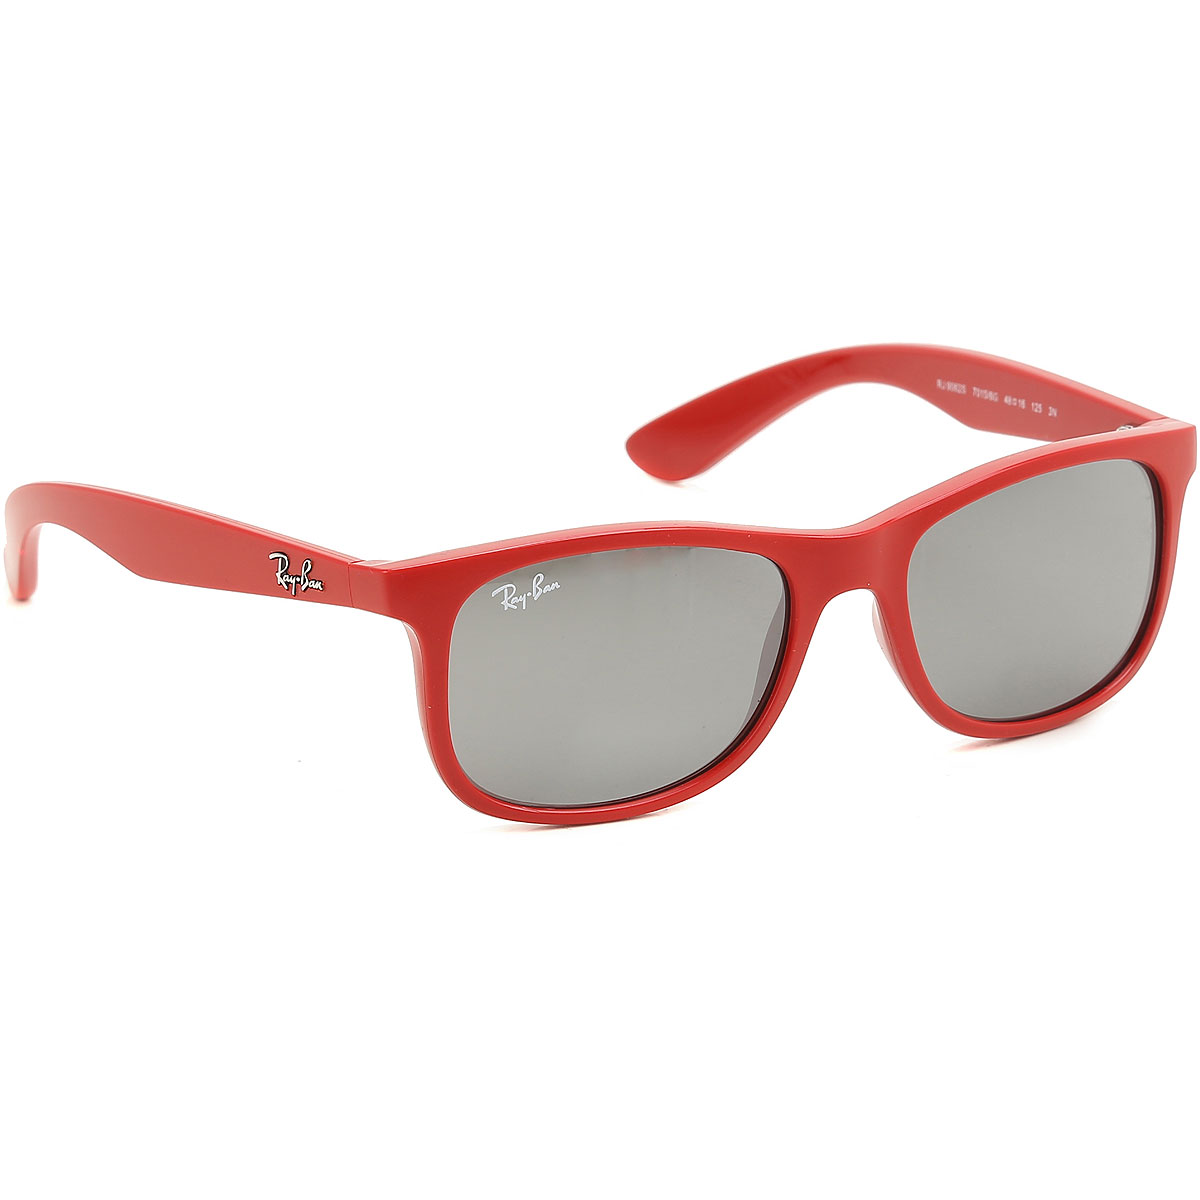 Image of Ray Ban Junior Kids Sunglasses for Boys On Sale, Red, 2017